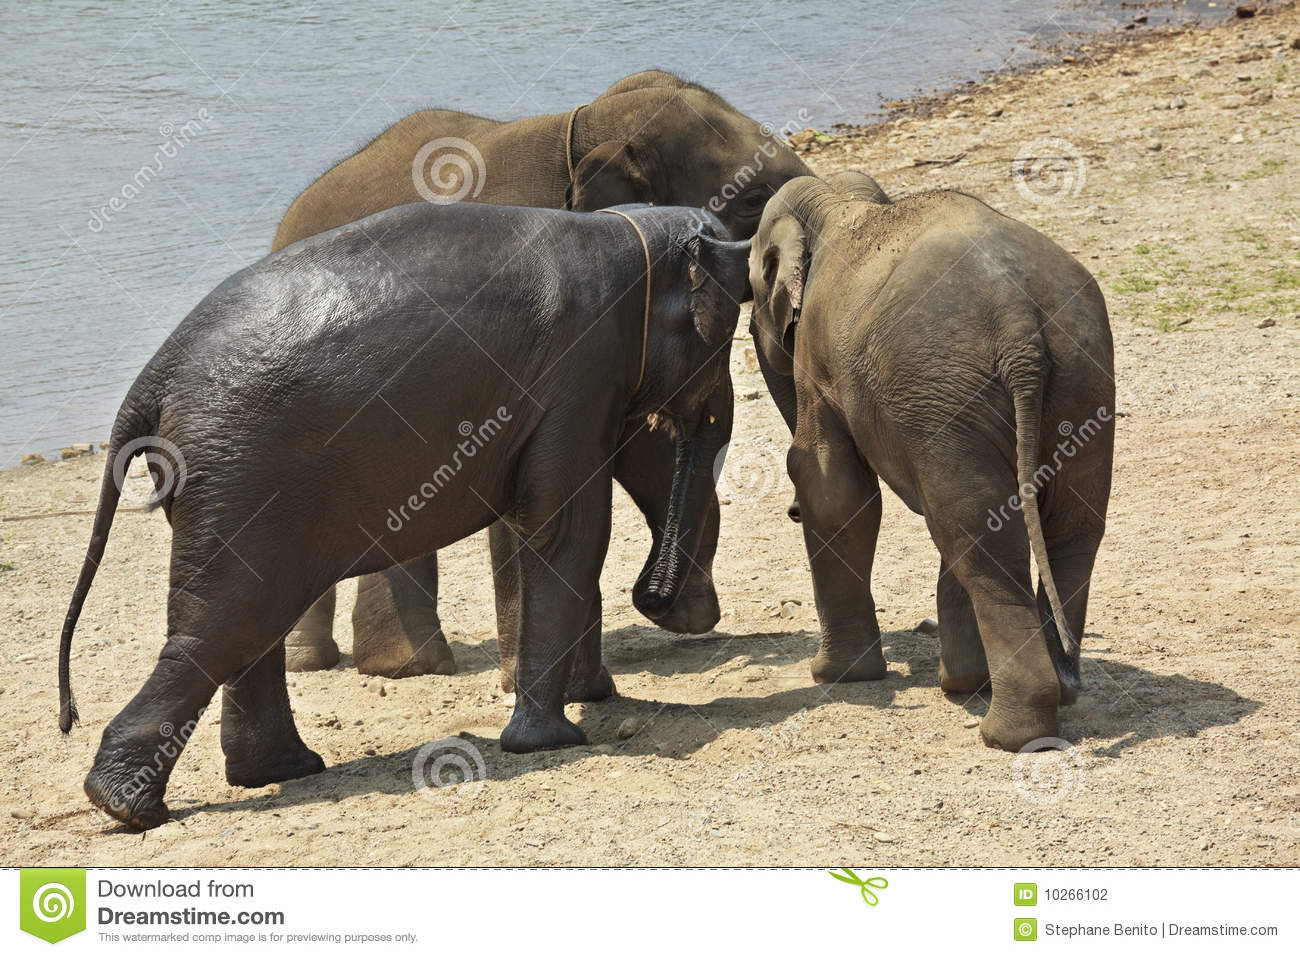 Join. And Elephant adults only